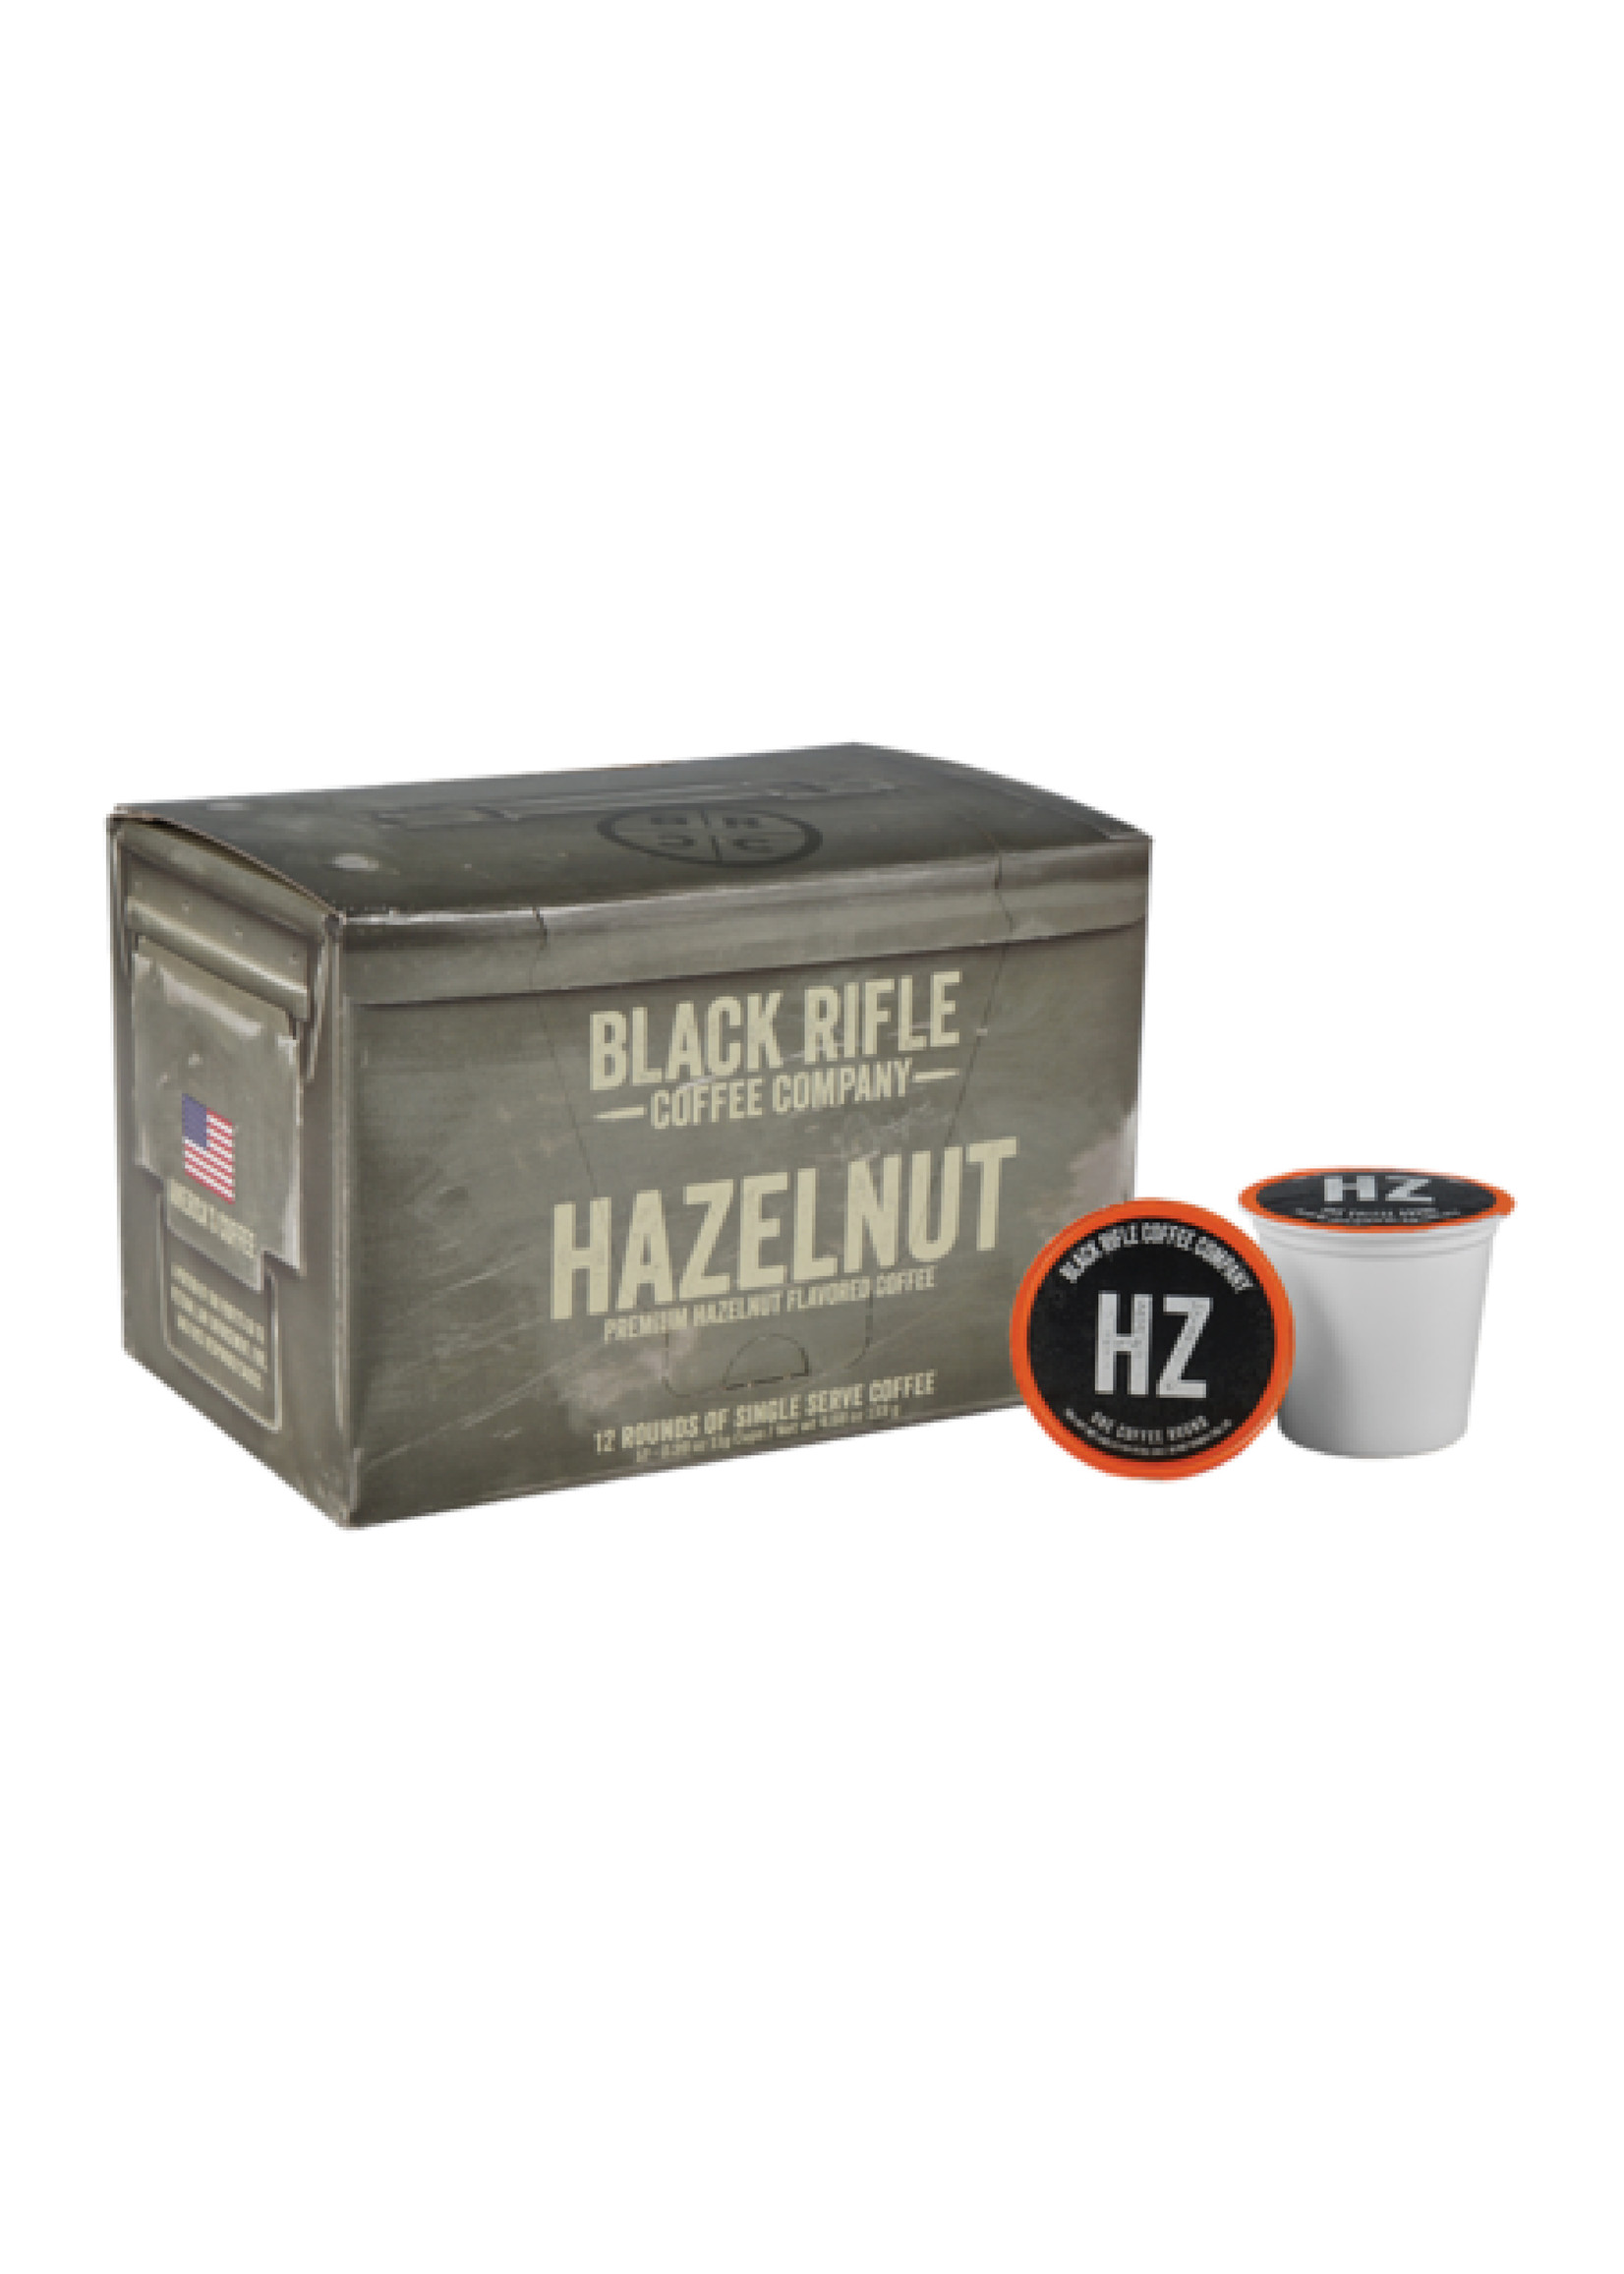 Black Rifle Coffee Company Black Rifle Coffee Company Hazelnut Coffee Rounds 12ct